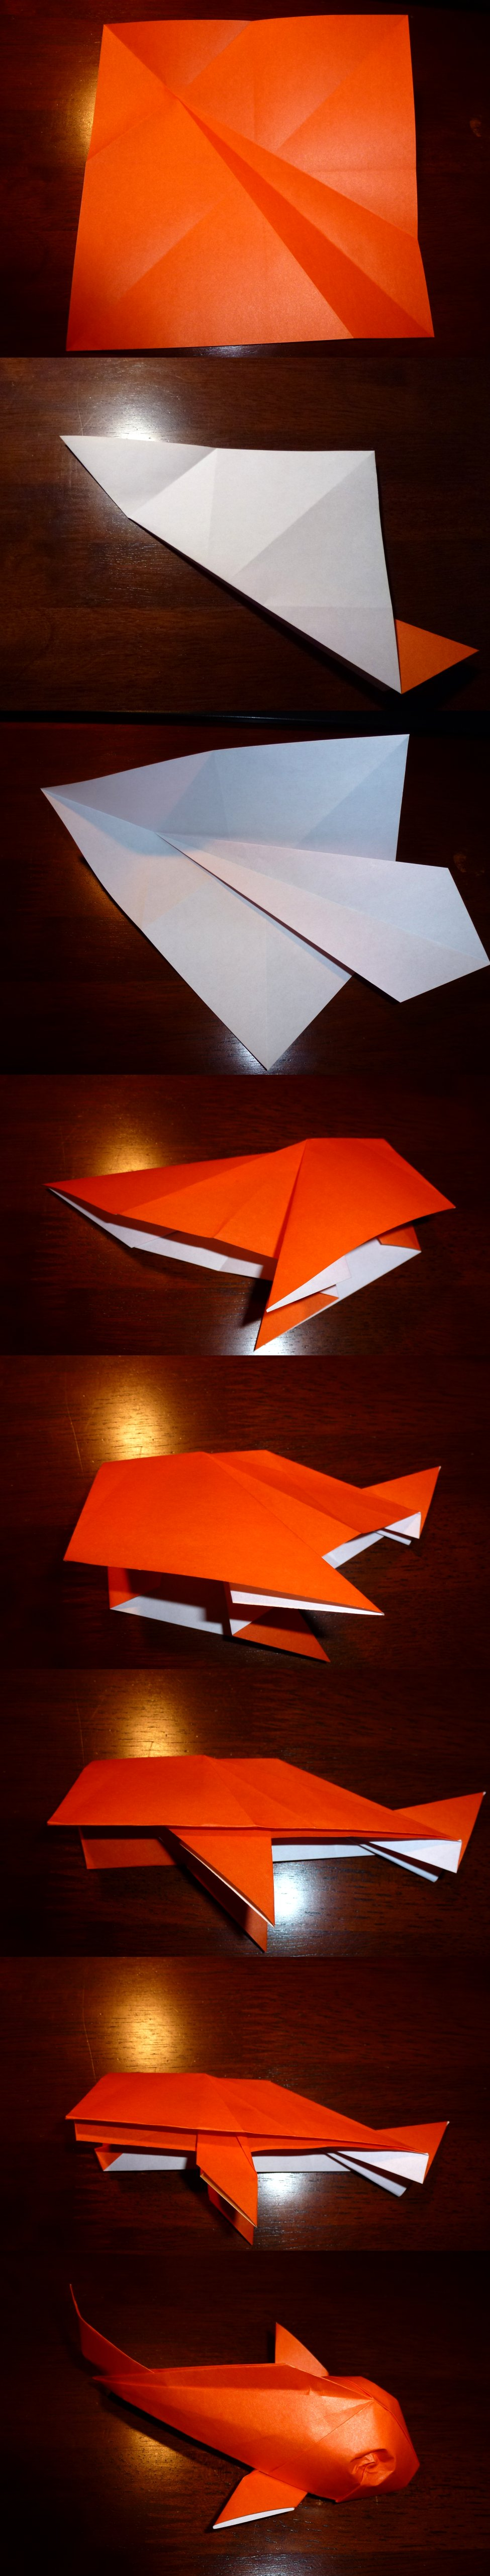 752 202 365 Riccardo Foschis Koi Setting The Crease Origami Diagram I Found These Diagrams On Pinterest Seems They Are Test Oops Sorry But Love Shape And Model Structure